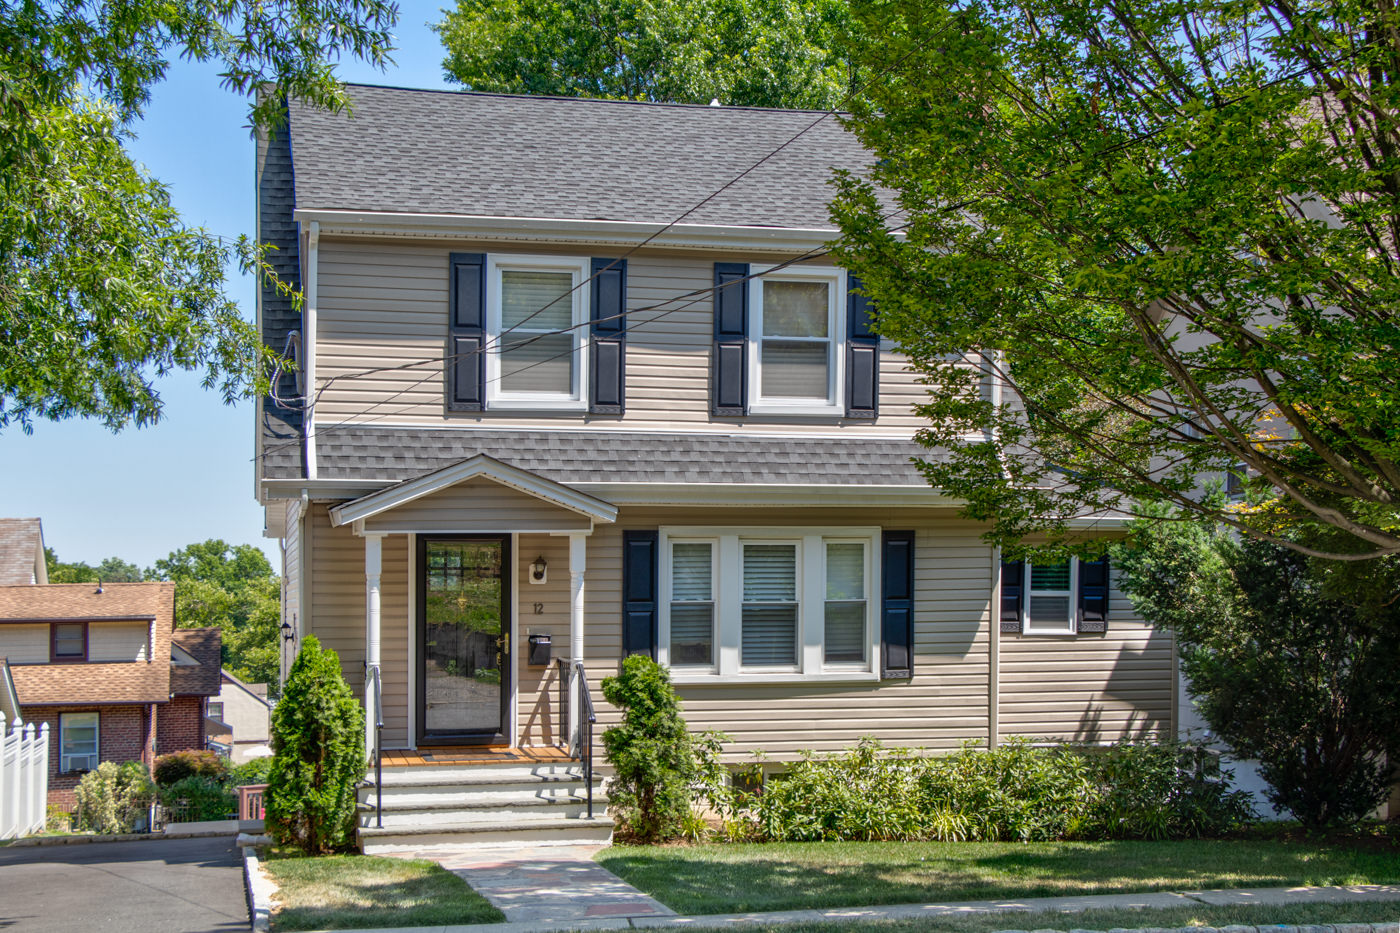 New Listing For Sale In Summit Nj 12 Park Ave Summit Nj 07901